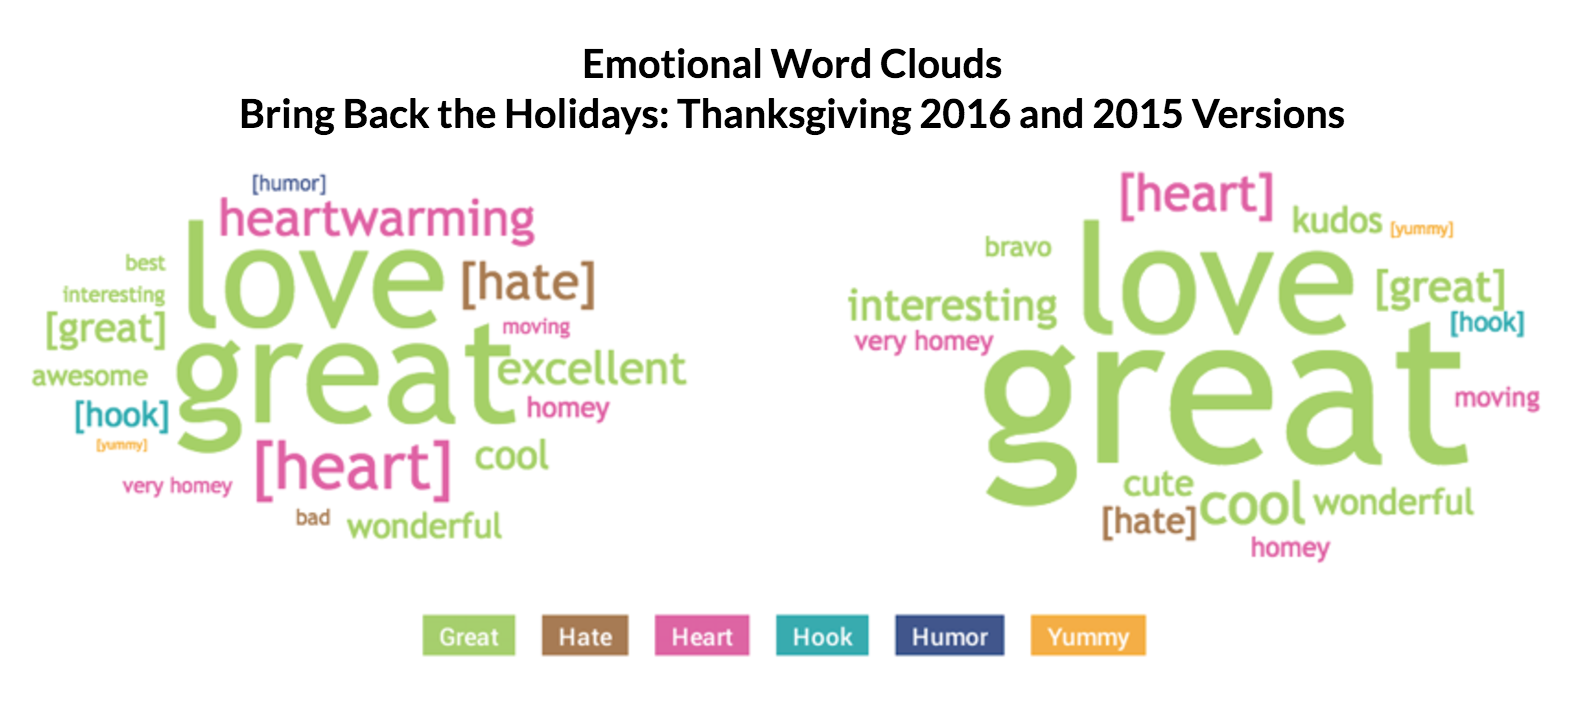 This image displays a photo of emotional word clouds.